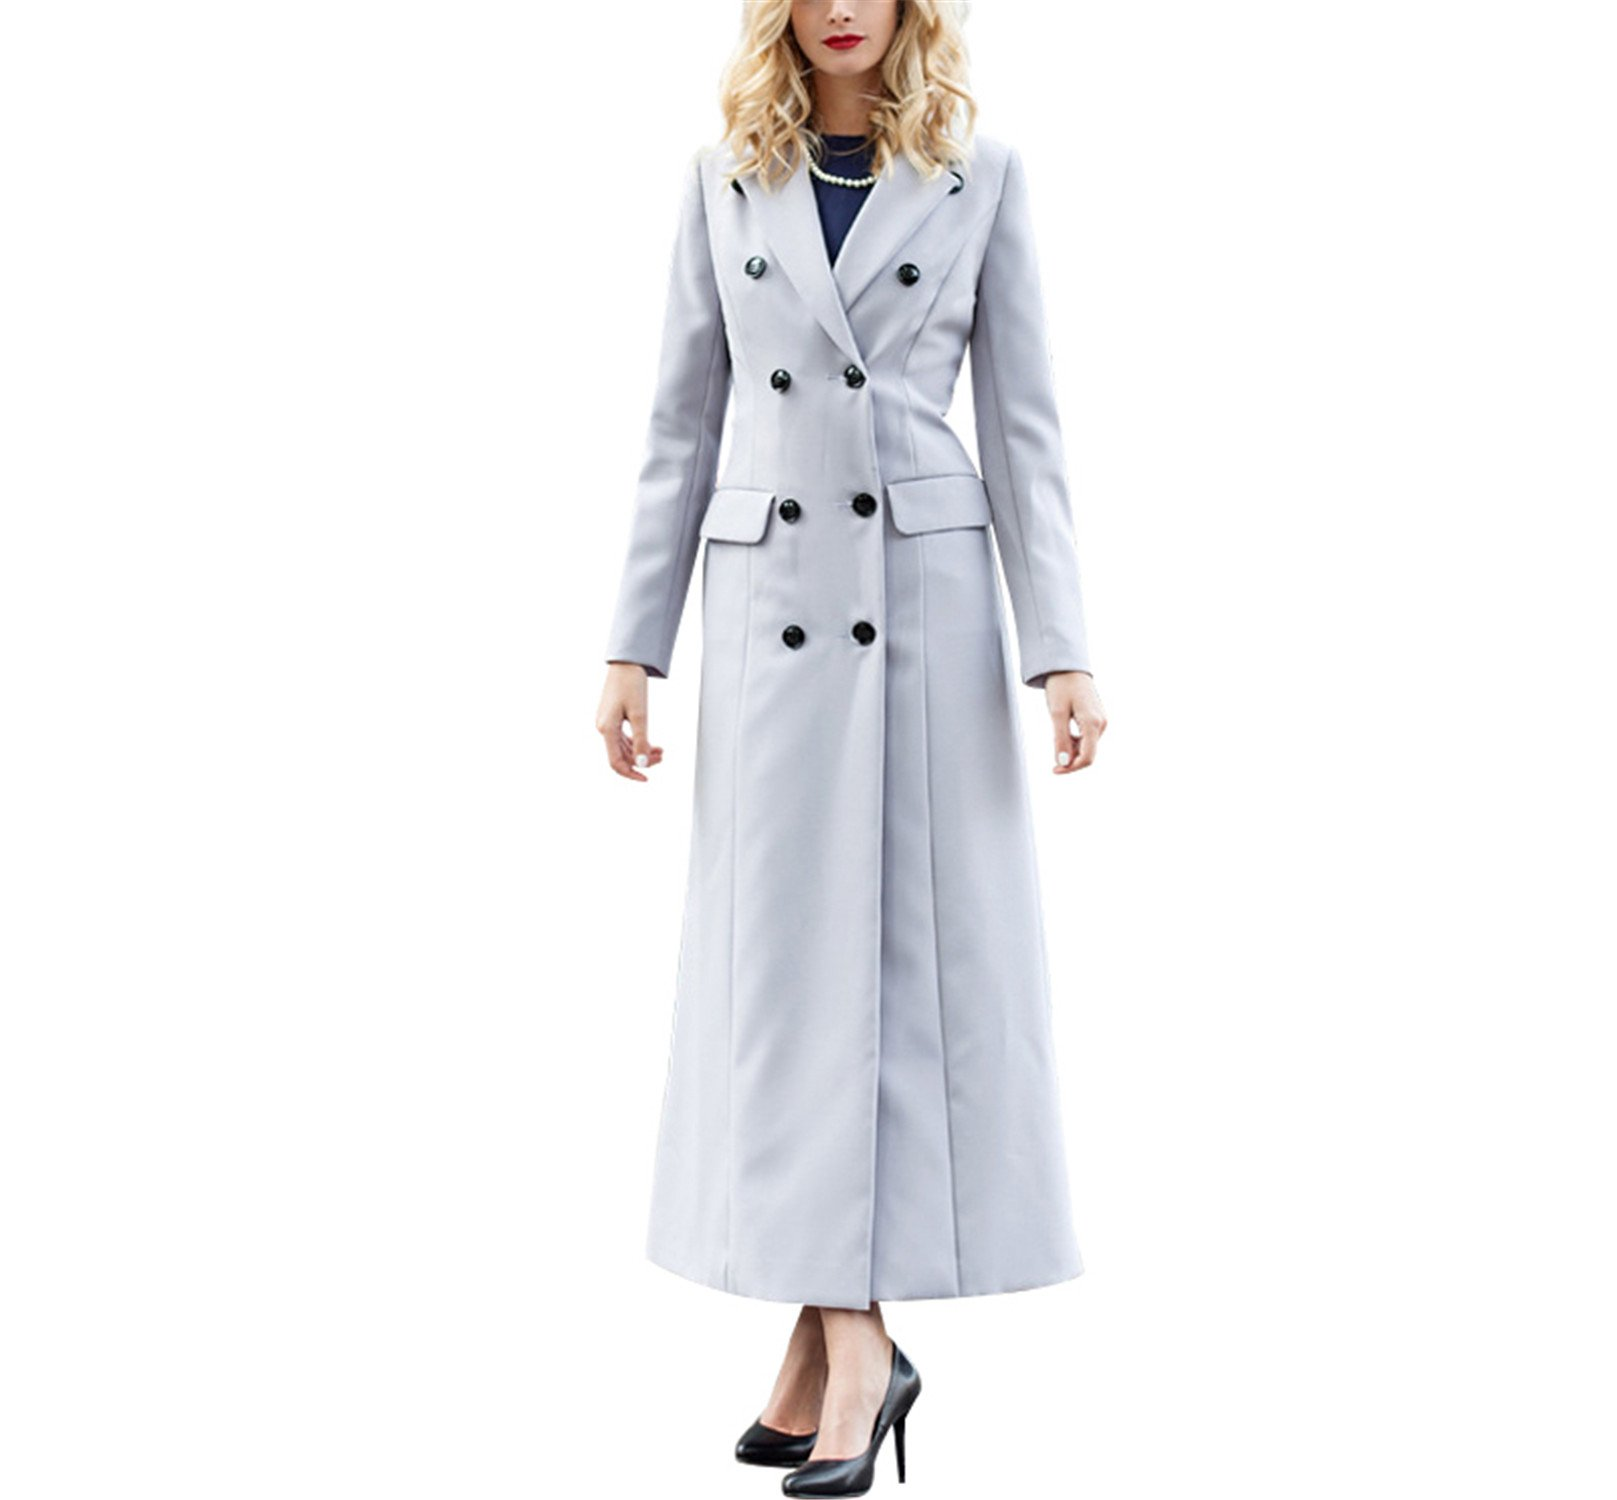 Processes OL British Style Spring Double Bressted Long Coat Women Buttons Turndown Collar Full Length Overcoat 5783A